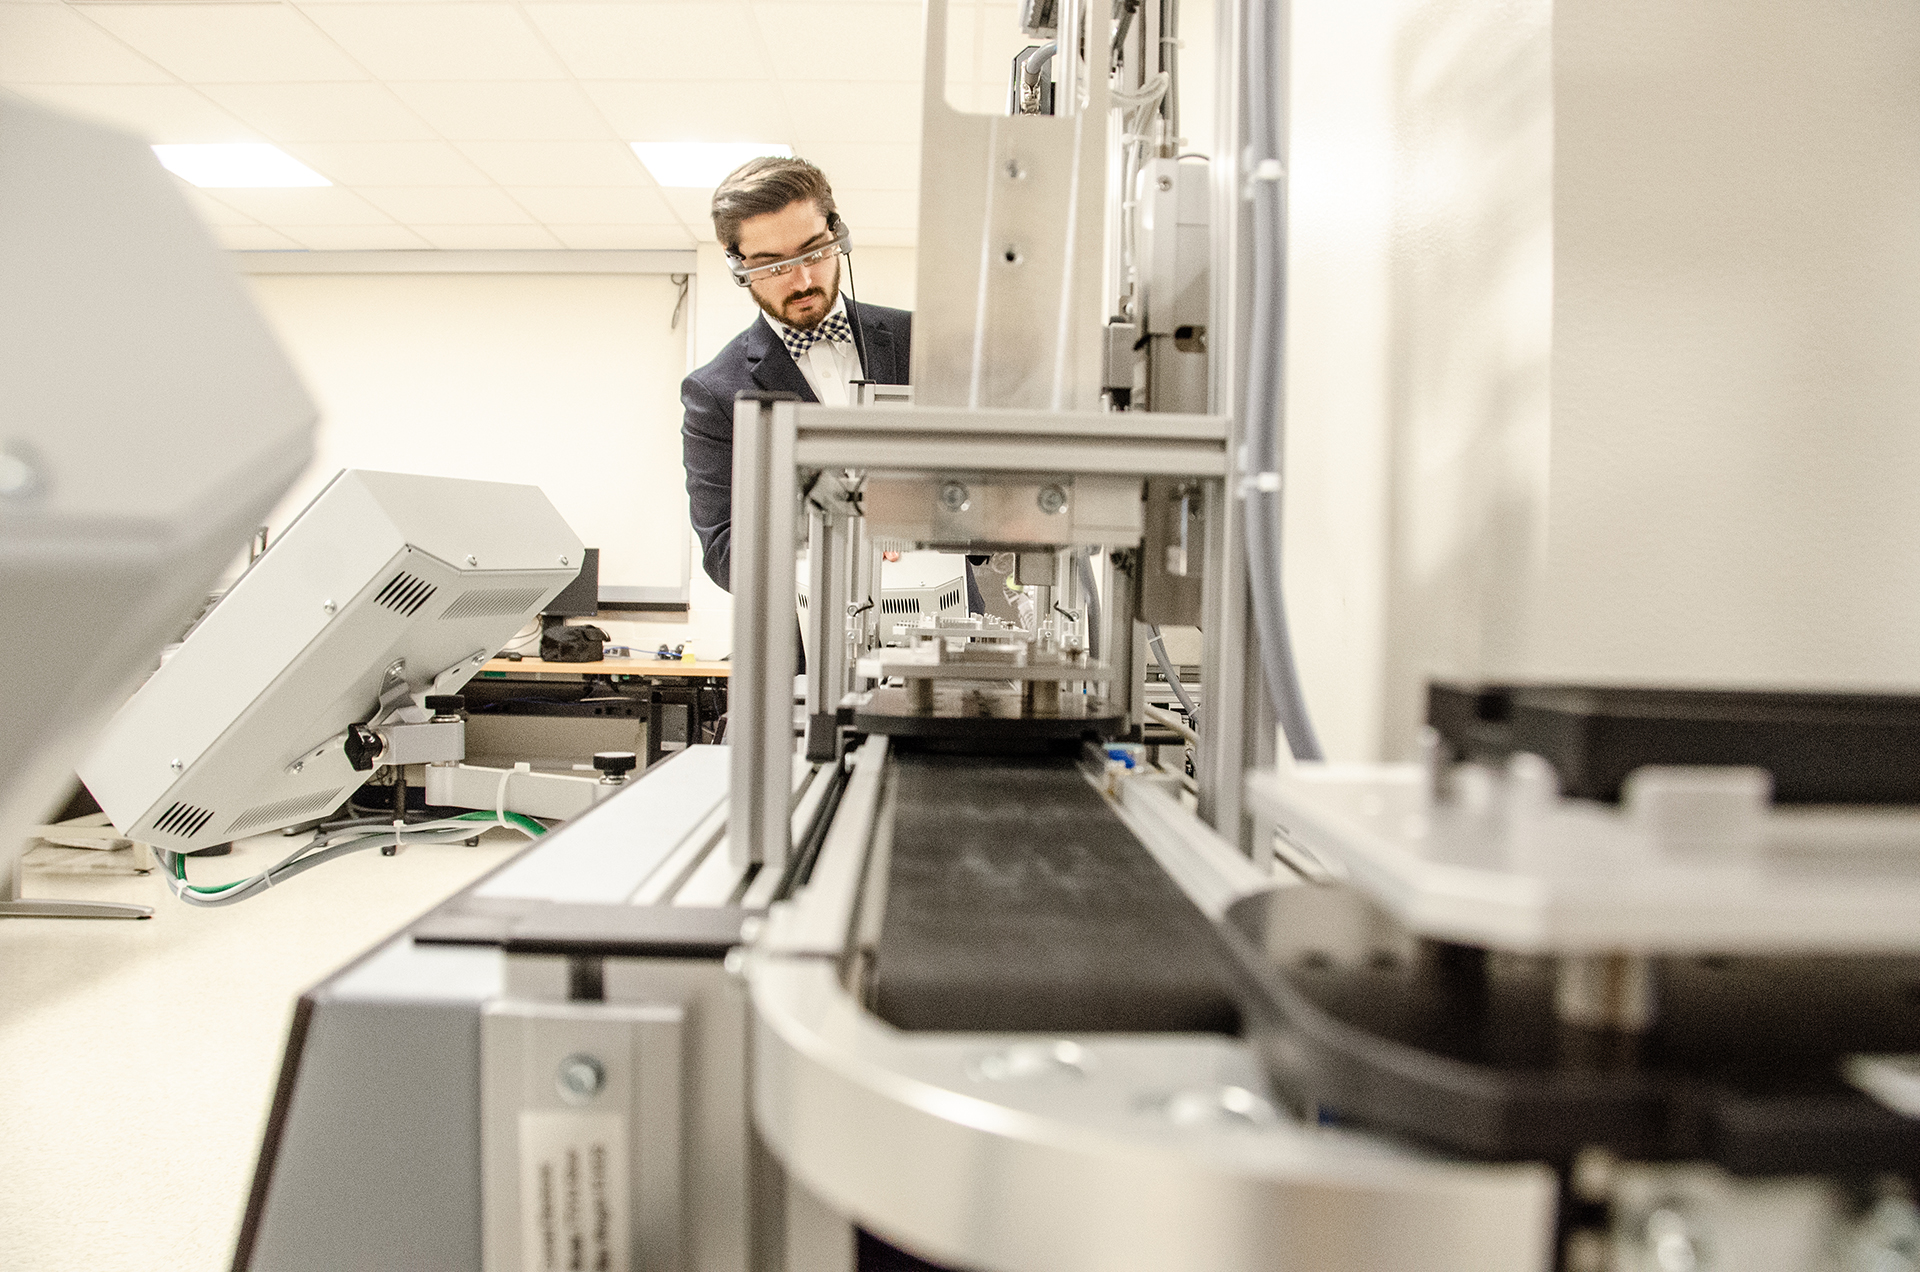 West Virginia Universitywill work with $1.4 million of the$3.8 millionEPSCoRRII Track-2 grant from the National Science Foundation to bring smart manufacturing processes to the Mountain State. (WVU Photo/Paige Nesbit)